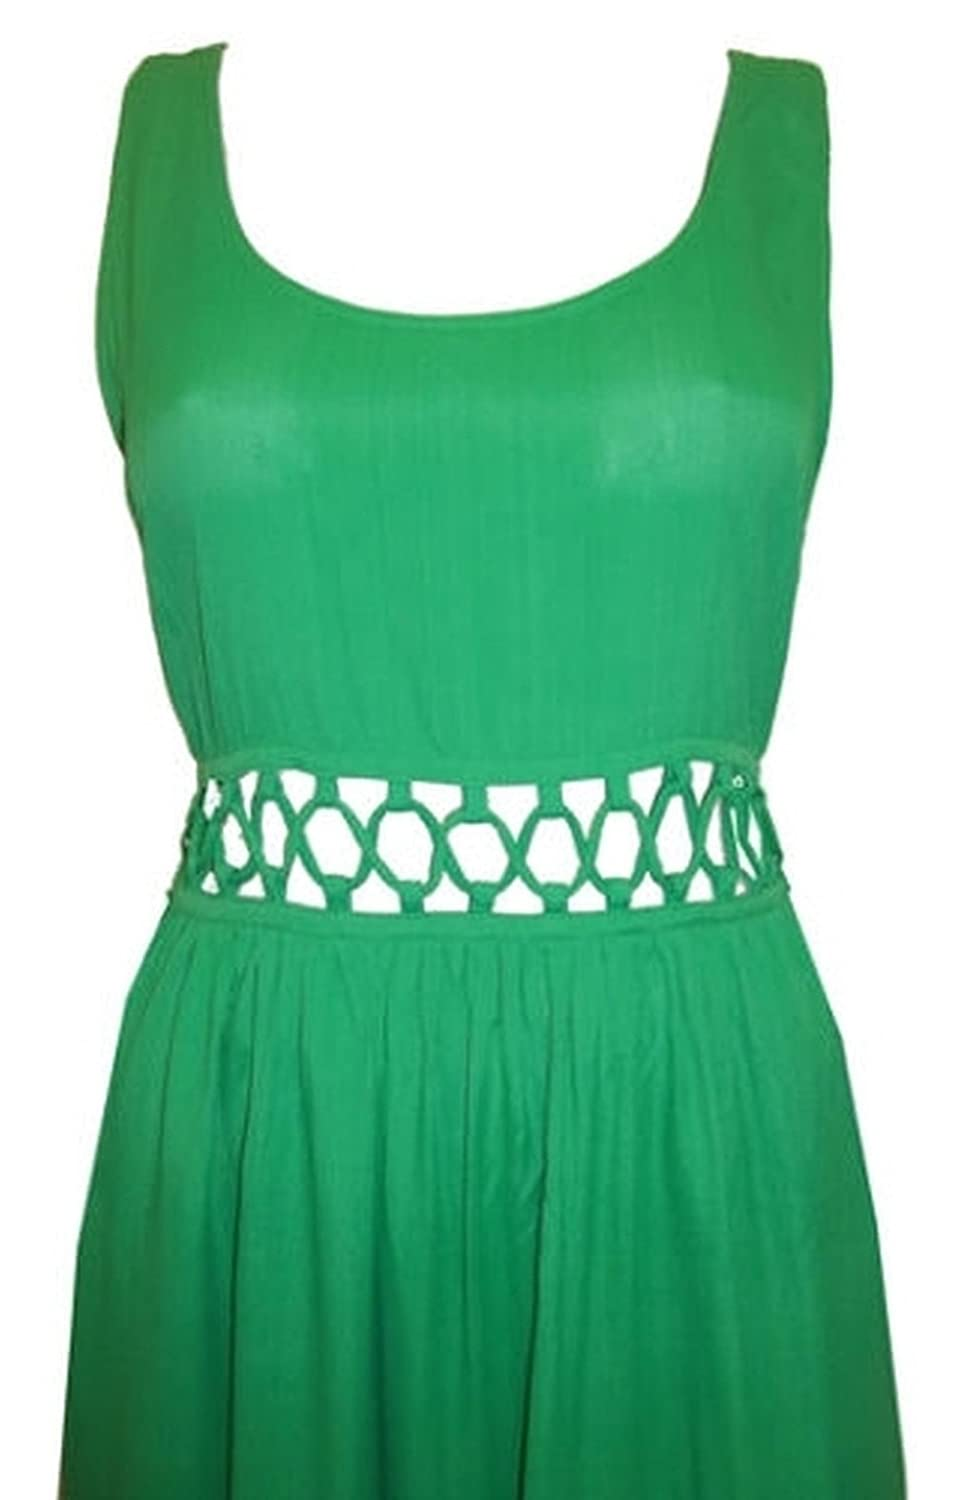 Ex Topshop Green Laced Crepe Prom Ball Maxi Long Gown Dress Size 6 8 10 12 (UK 8): Amazon.co.uk: Clothing